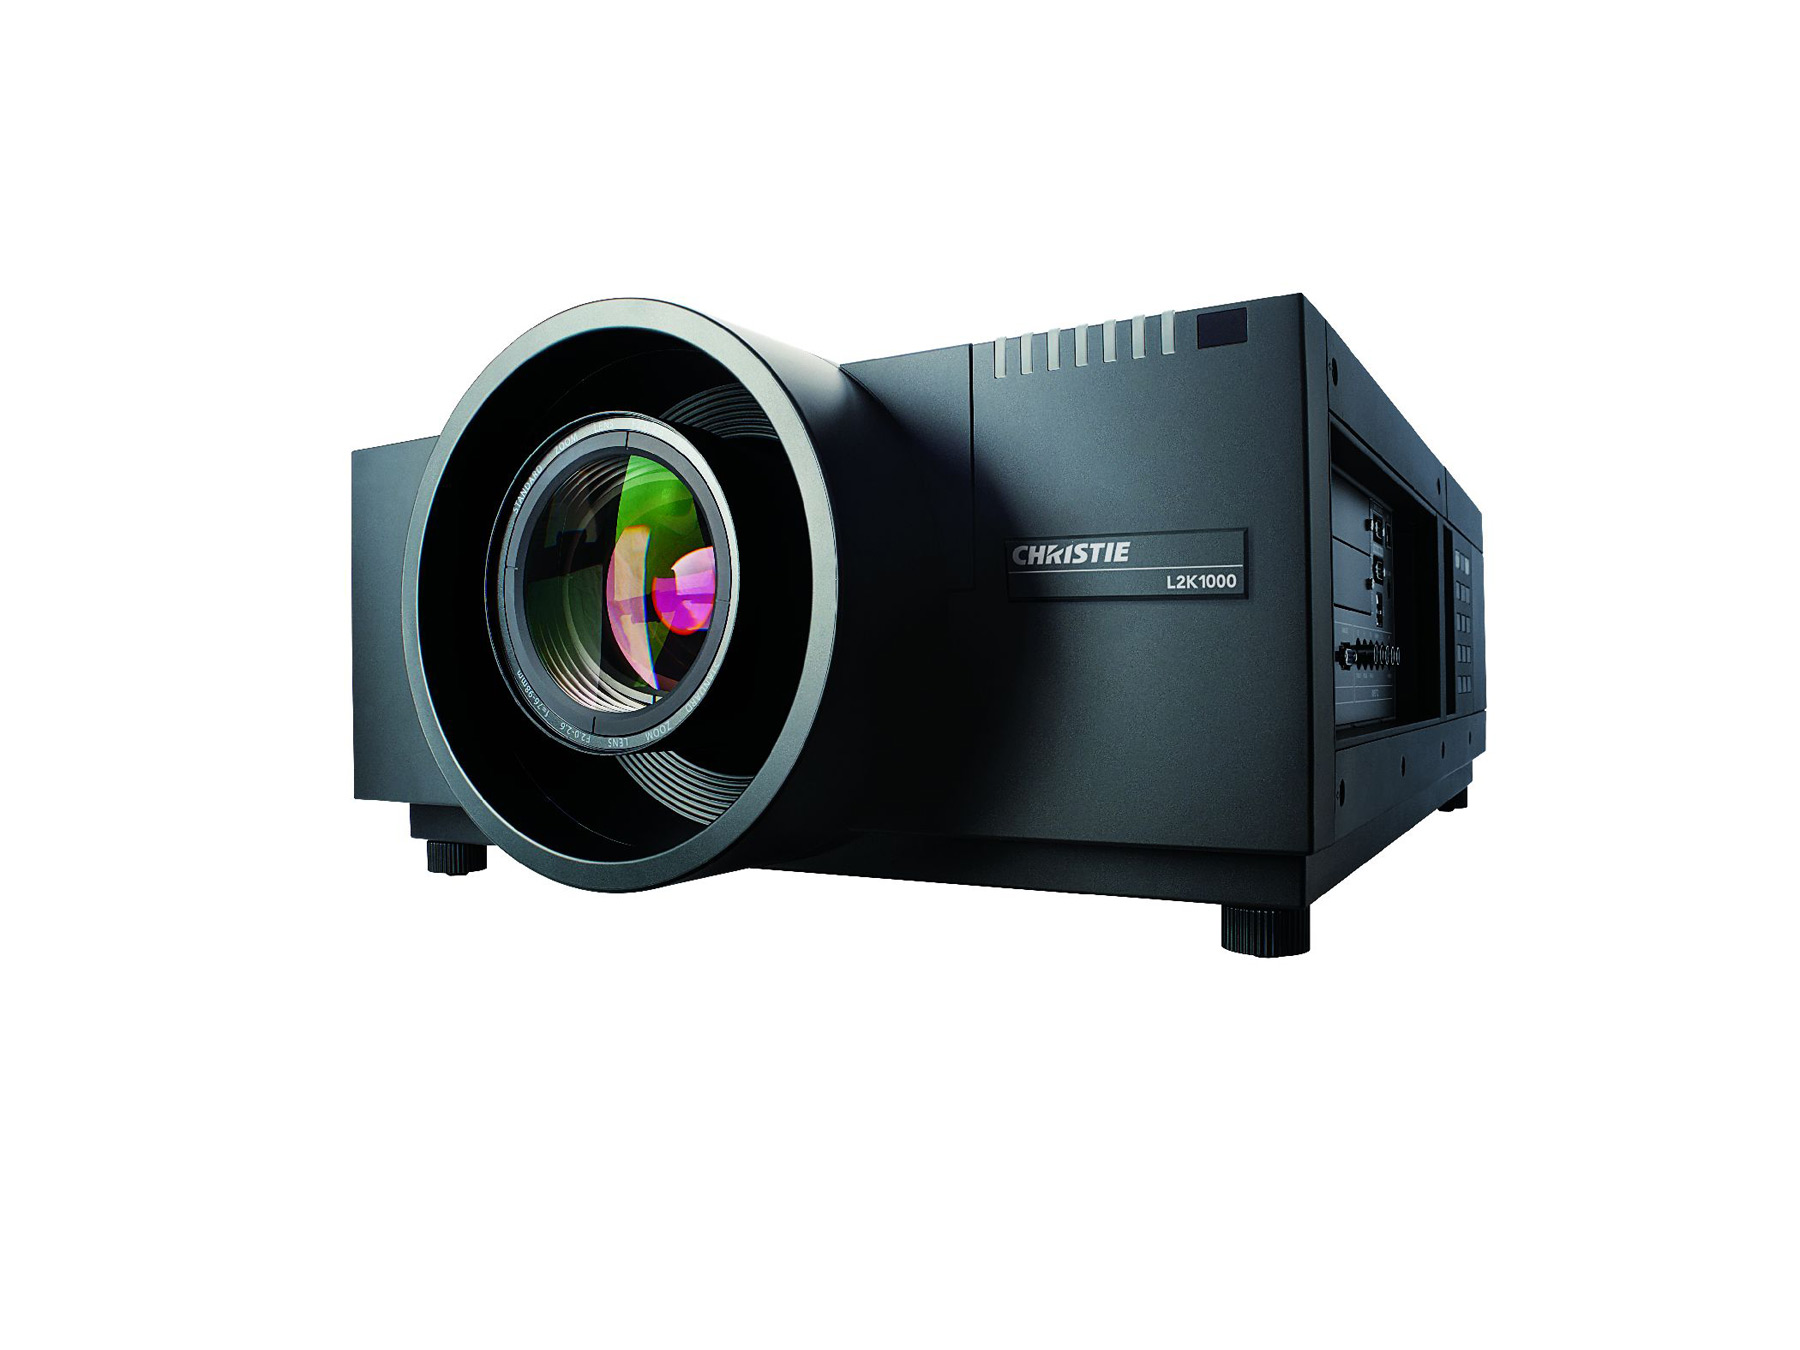 /globalassets/.catalog/products/images/christie-l2k1000/gallery/christie-l2k-1000-3-lcd-digital-projector-image-12.jpg